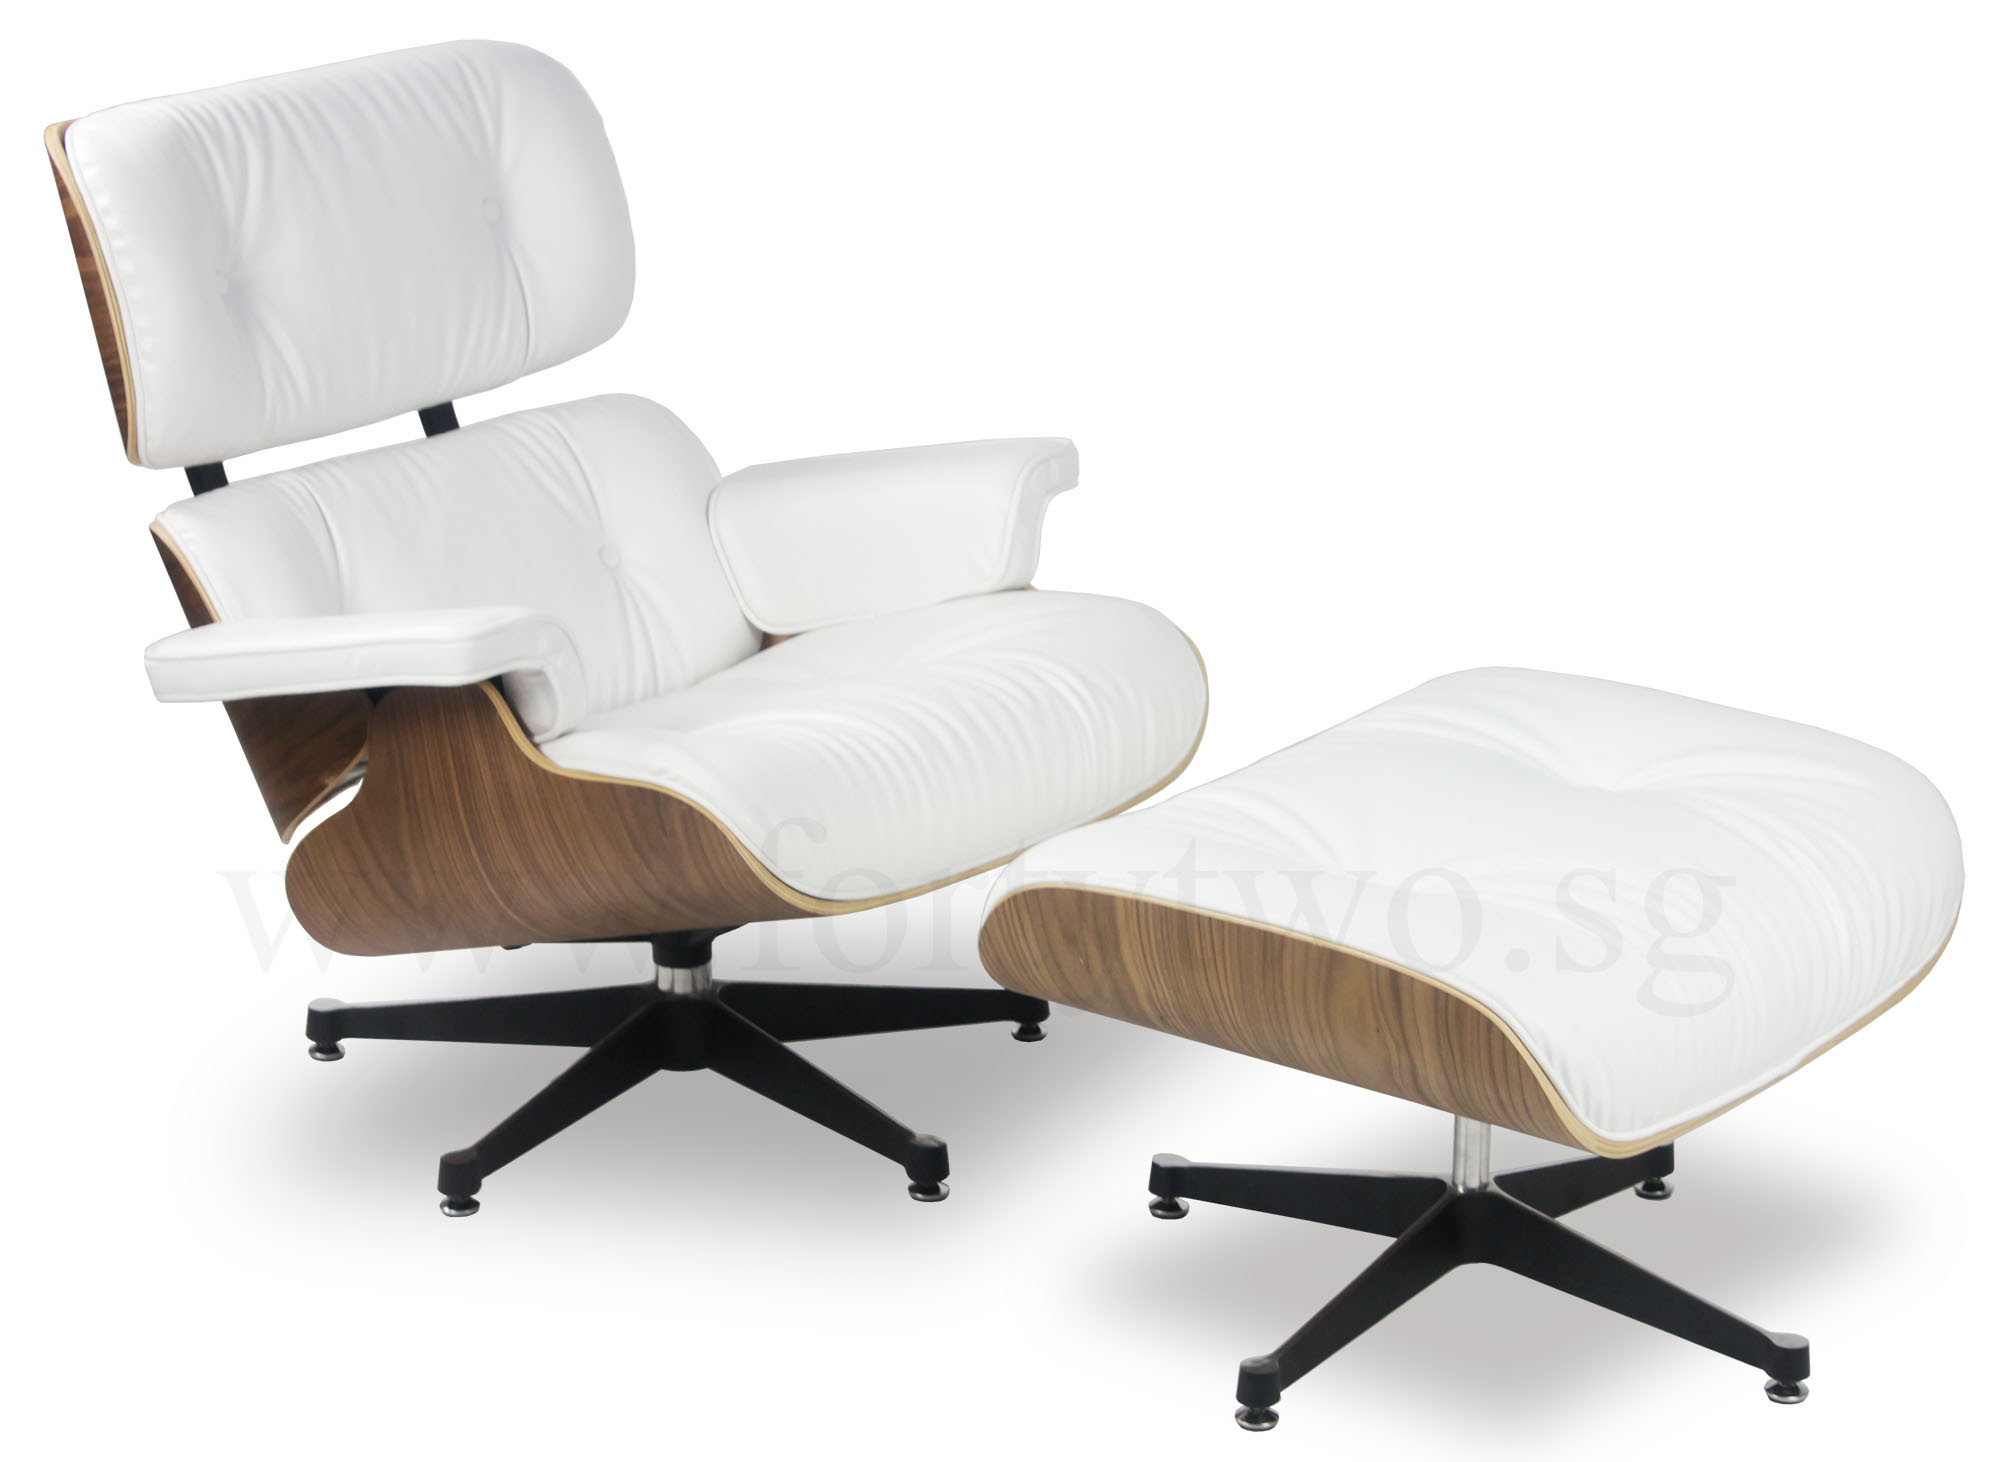 Eames replica lounge chair white leather furniture for Eames lounge chair replica erfahrungen